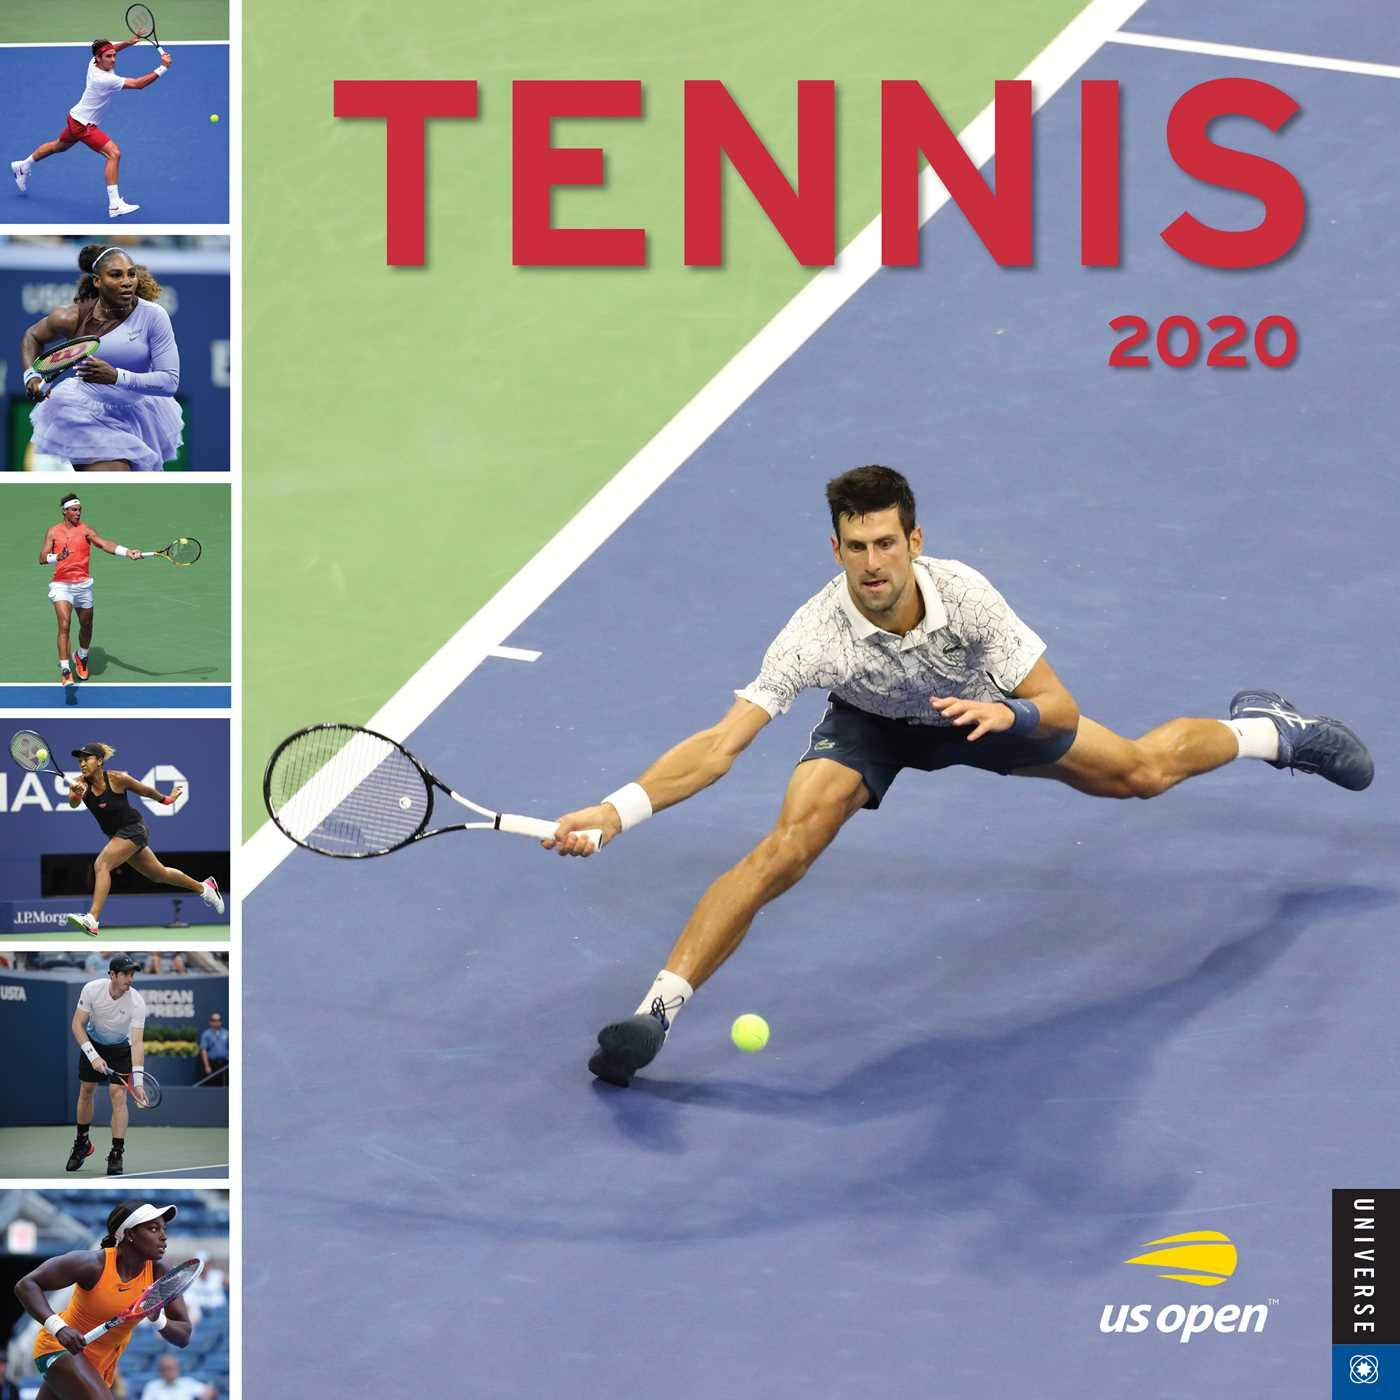 Calendrier Tennis 2021 Tennis 2020 Wall Calendar: The Official U.S. Open Calendar: United